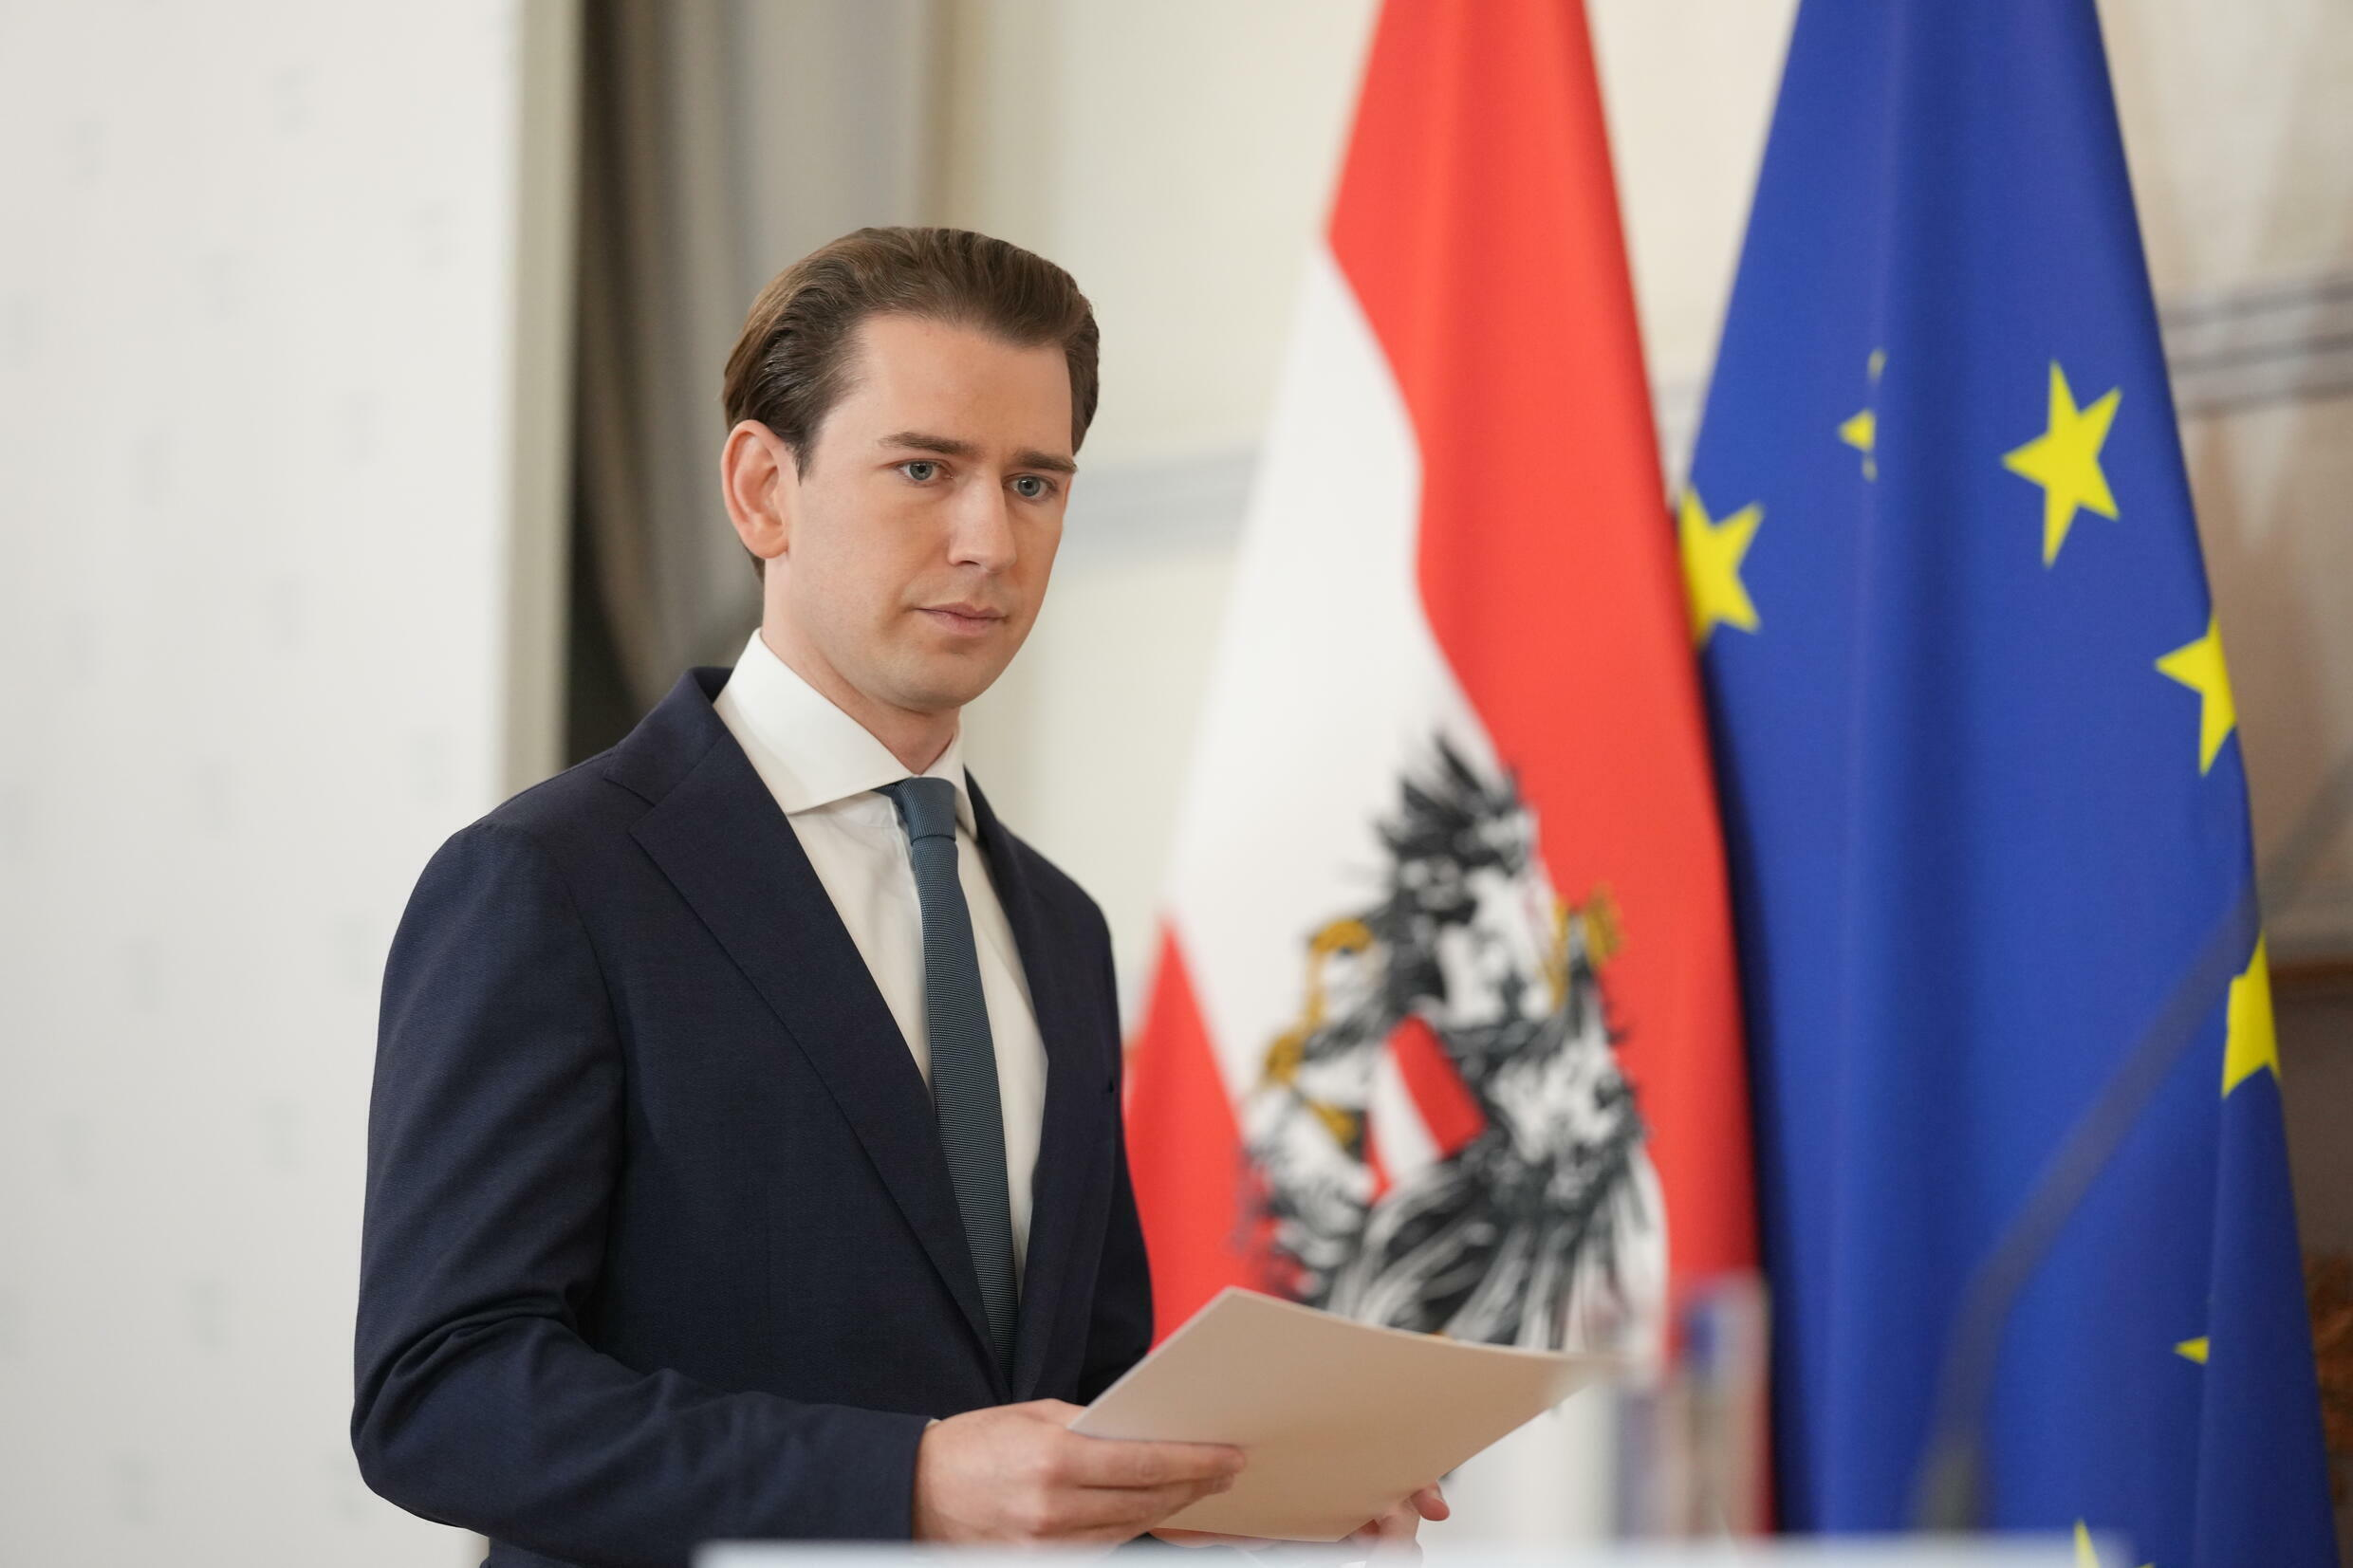 Kurz became the youngest elected leader anywhere in the world in 2017